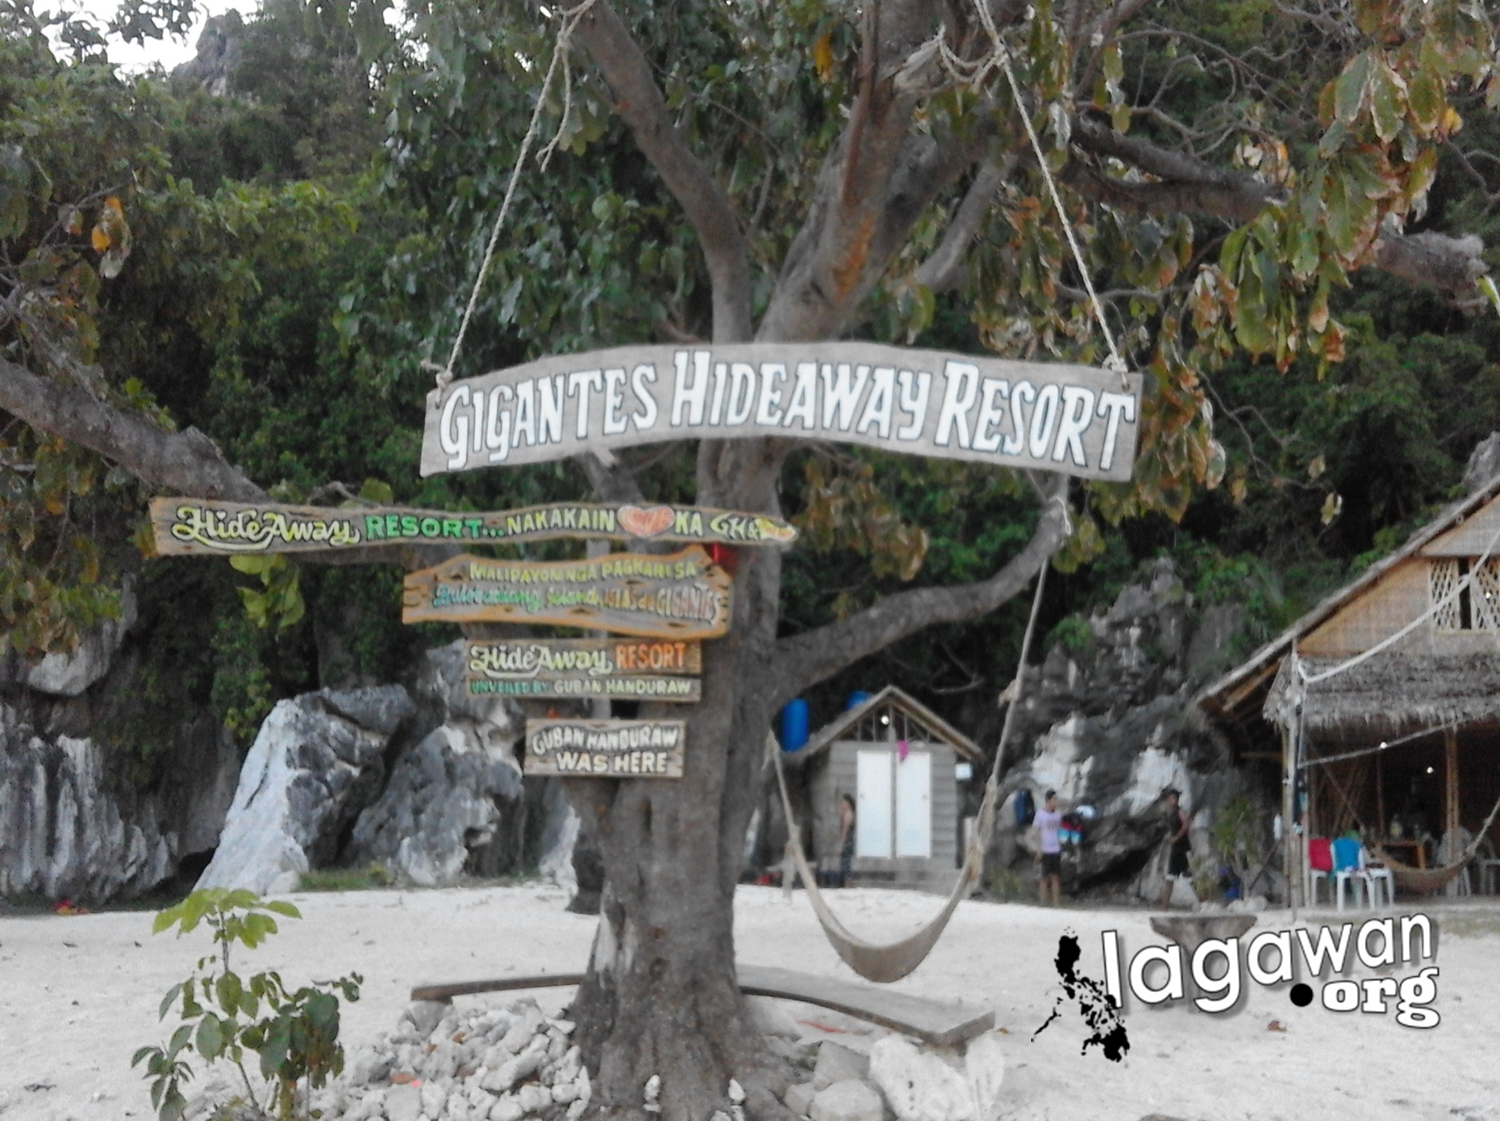 Isla de Gigantes Hideaway Resort Entrance